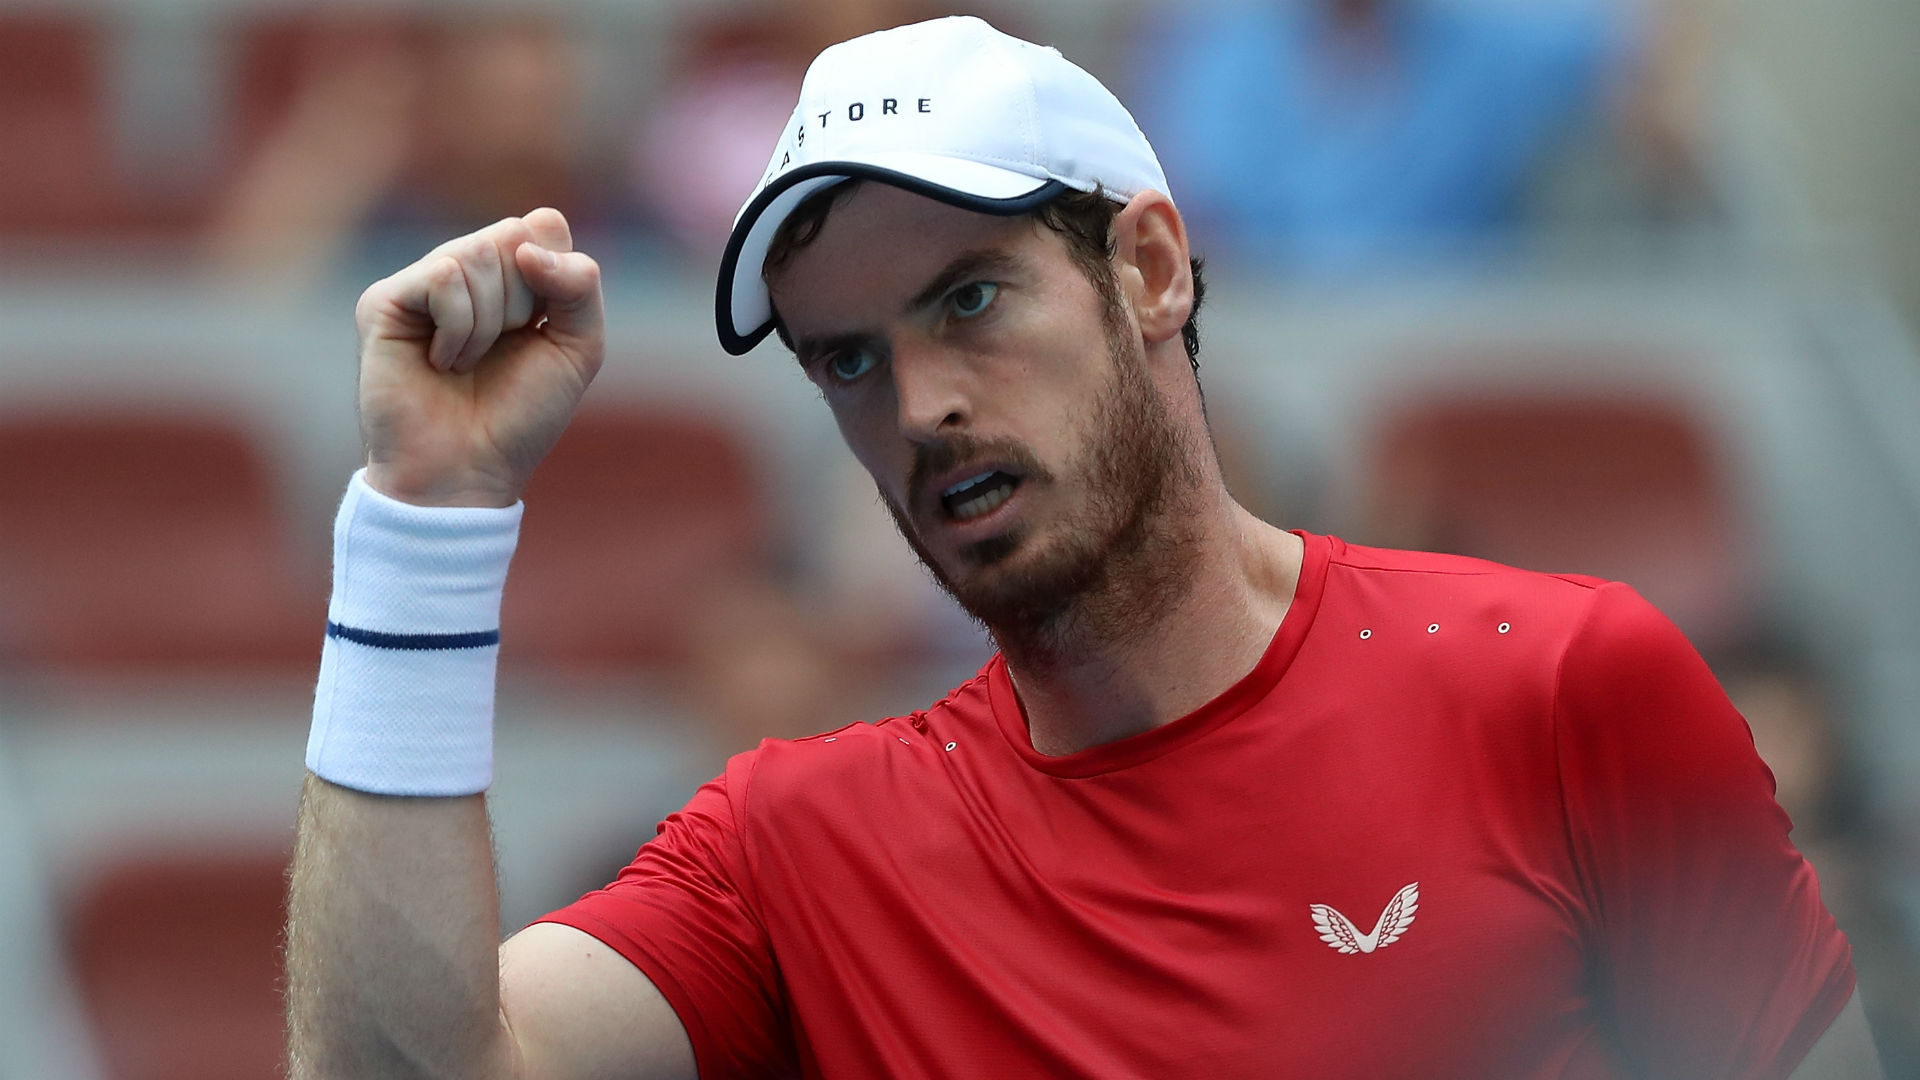 Former world number one Andy Murray was pushed all the way by Marius Copil before moving into the last four in Antwerp.